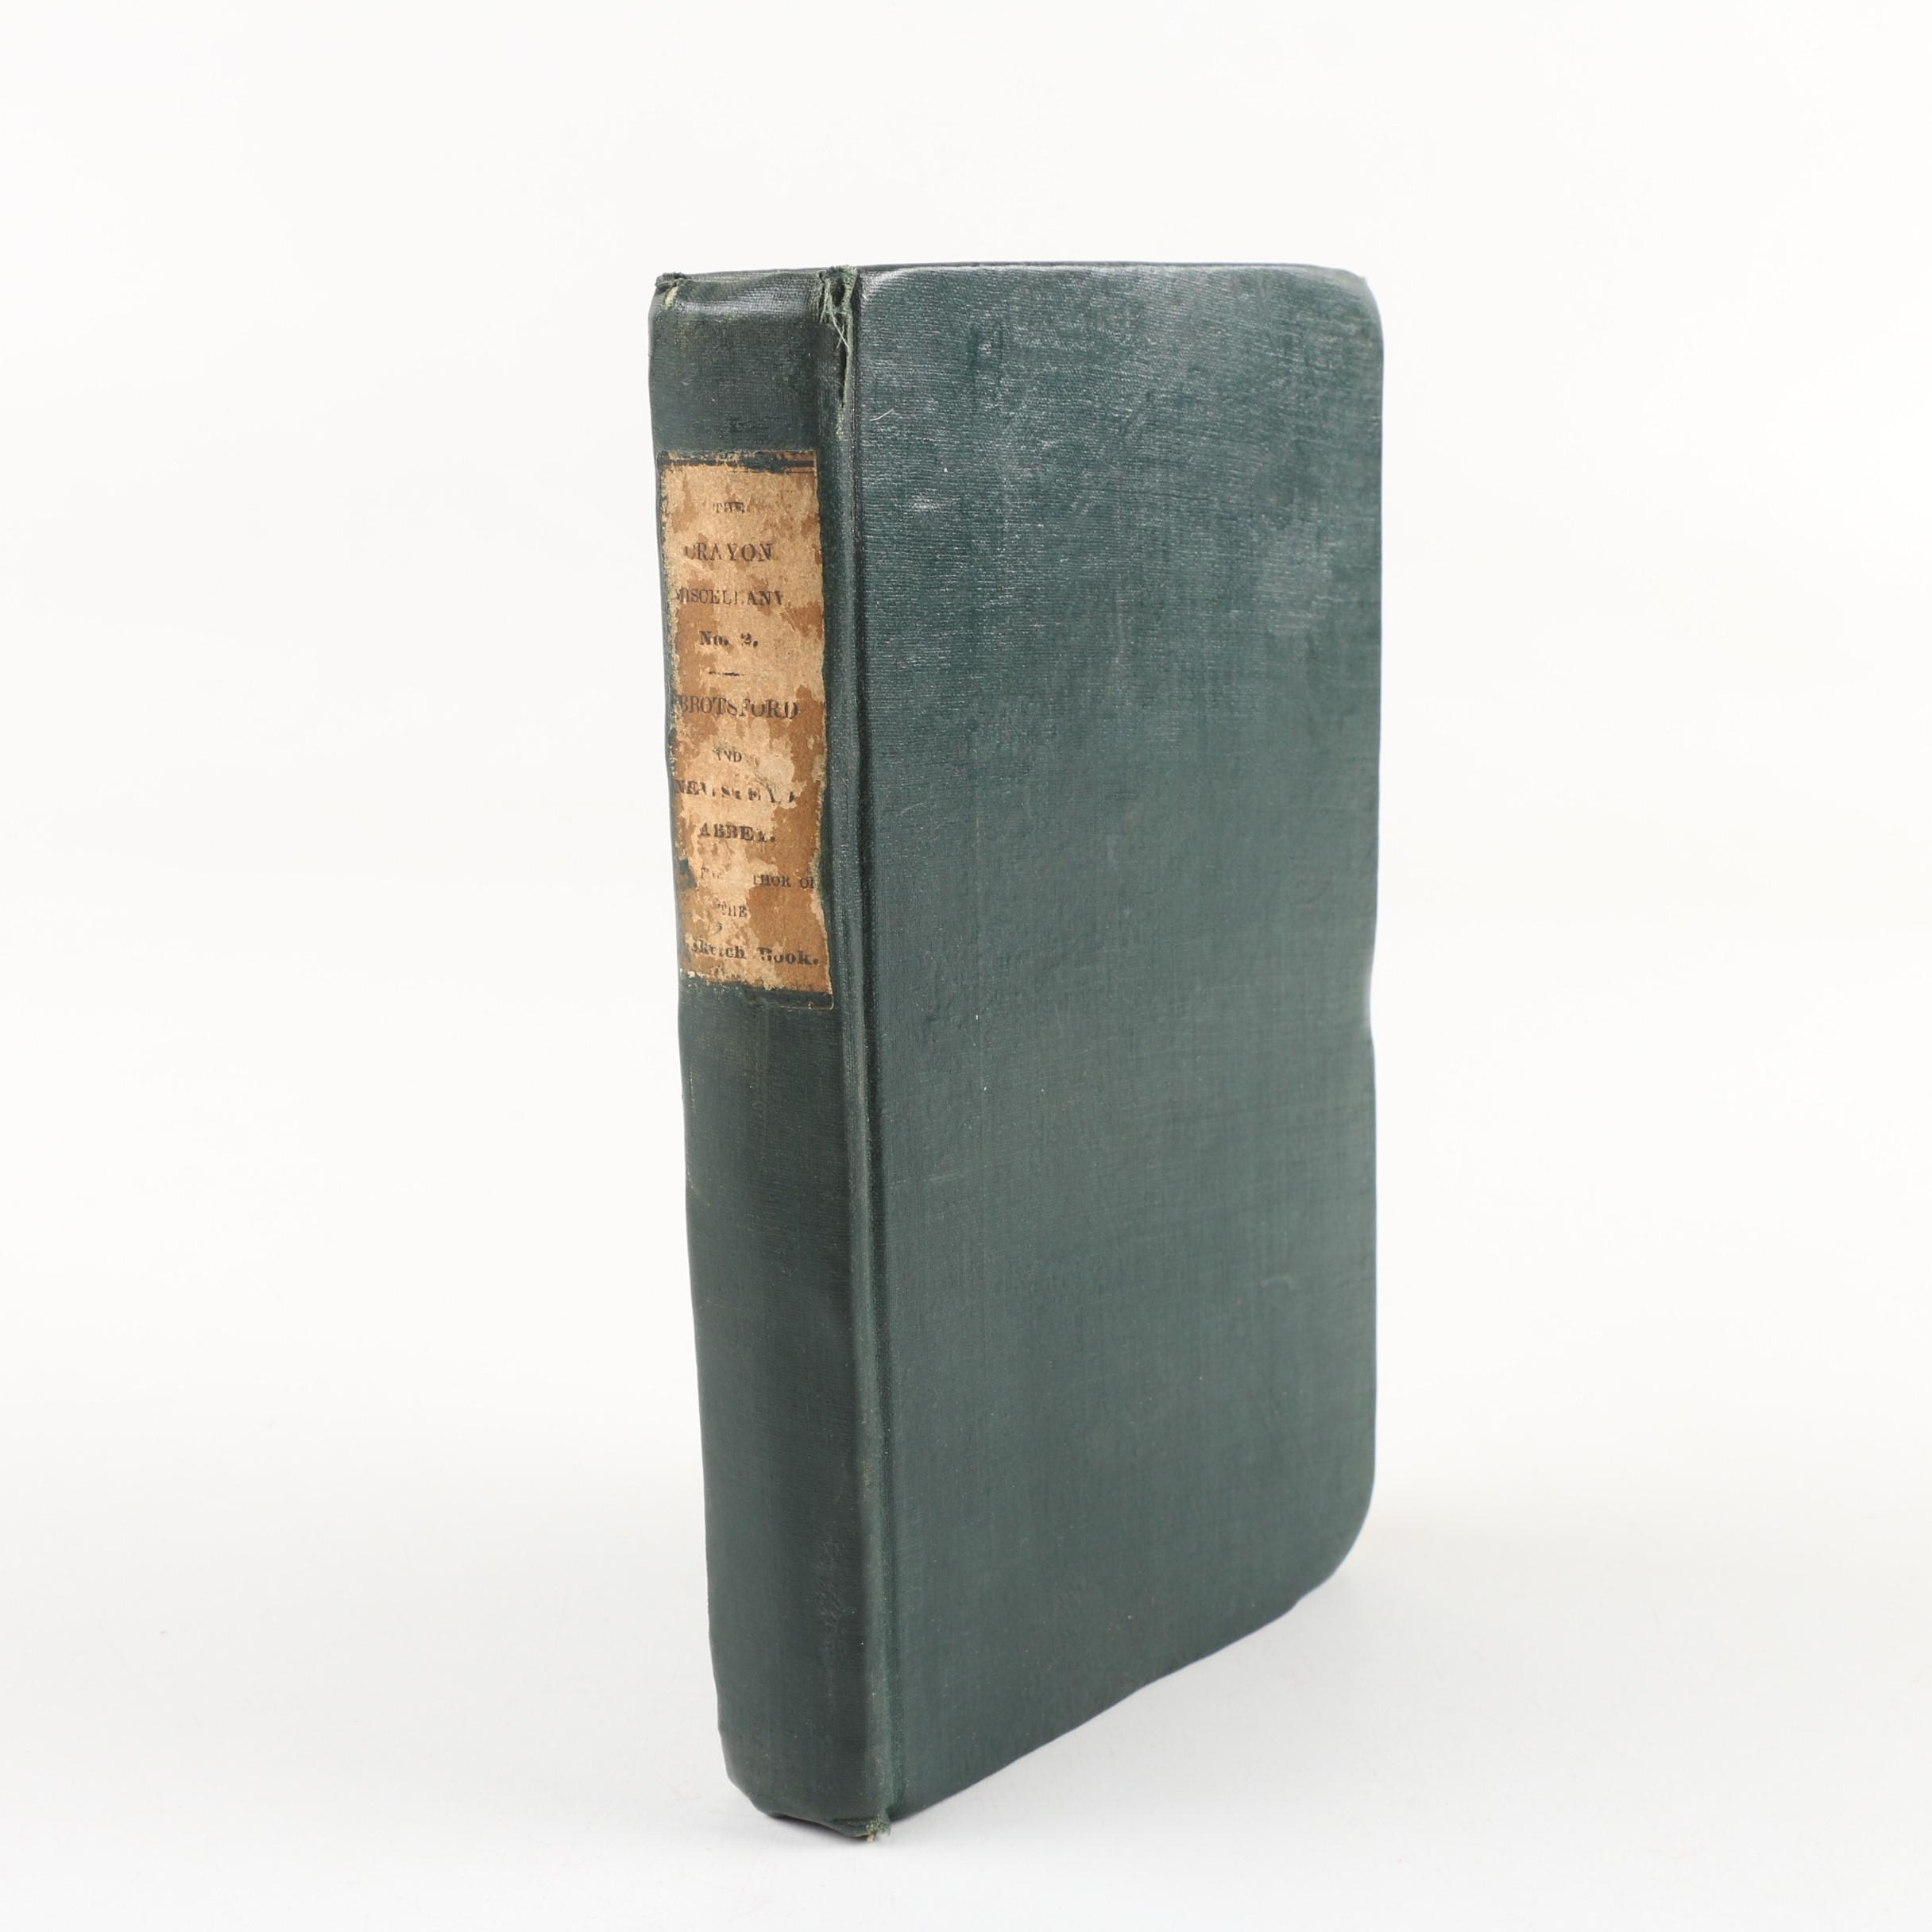 """First Printing """"The Crayon Miscellany No. 2"""" by Washington Irving, 1835"""